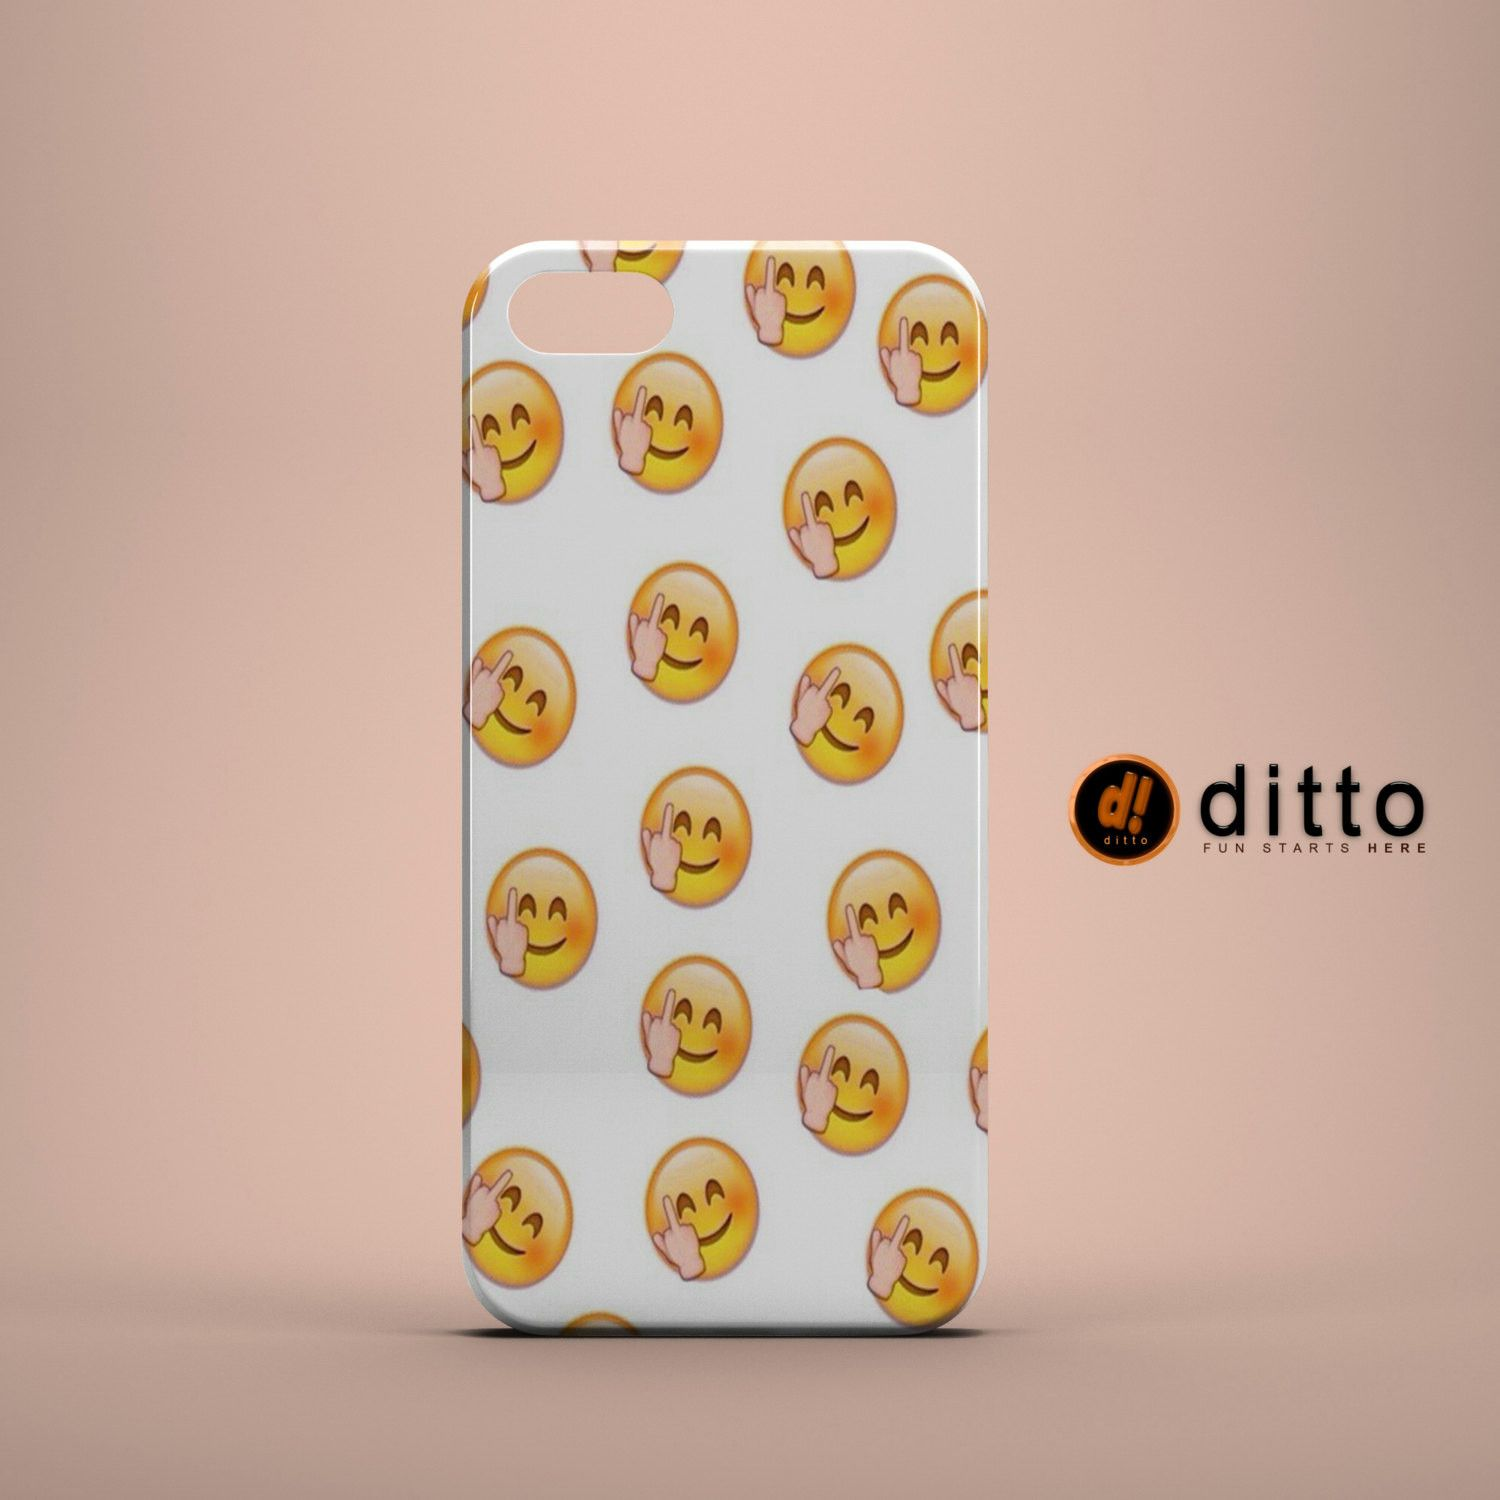 Godittoditto Phone Case Maker Cool Cases Custom Phone Cases